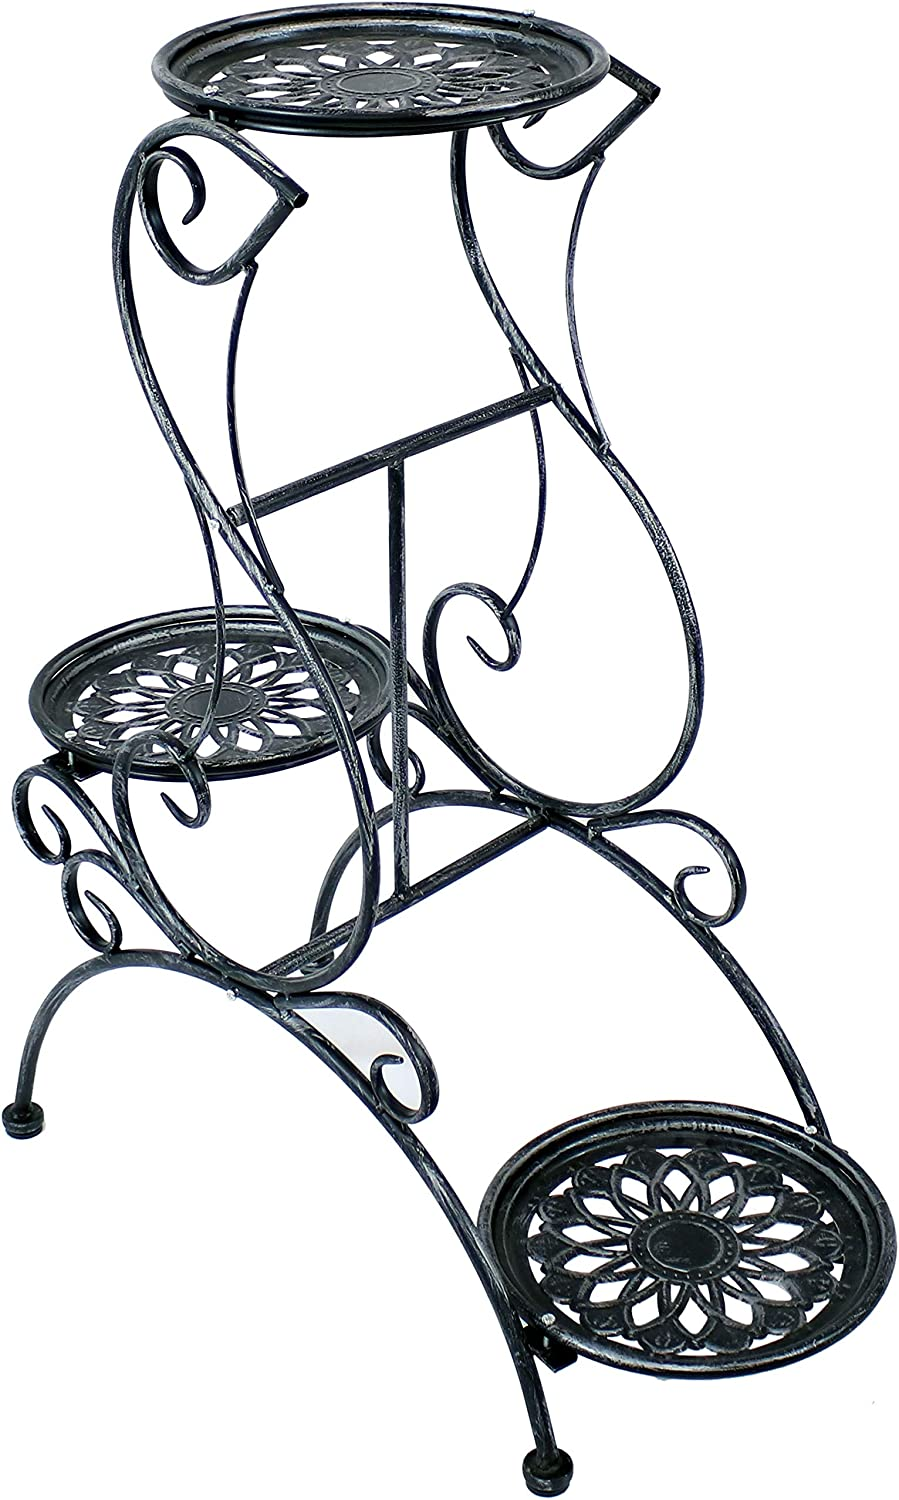 Sunnydaze 3-Tier Outlet ☆ Free Shipping Victorian Metal Plant Stand Charlotte Mall Indoor Flo Outdoor